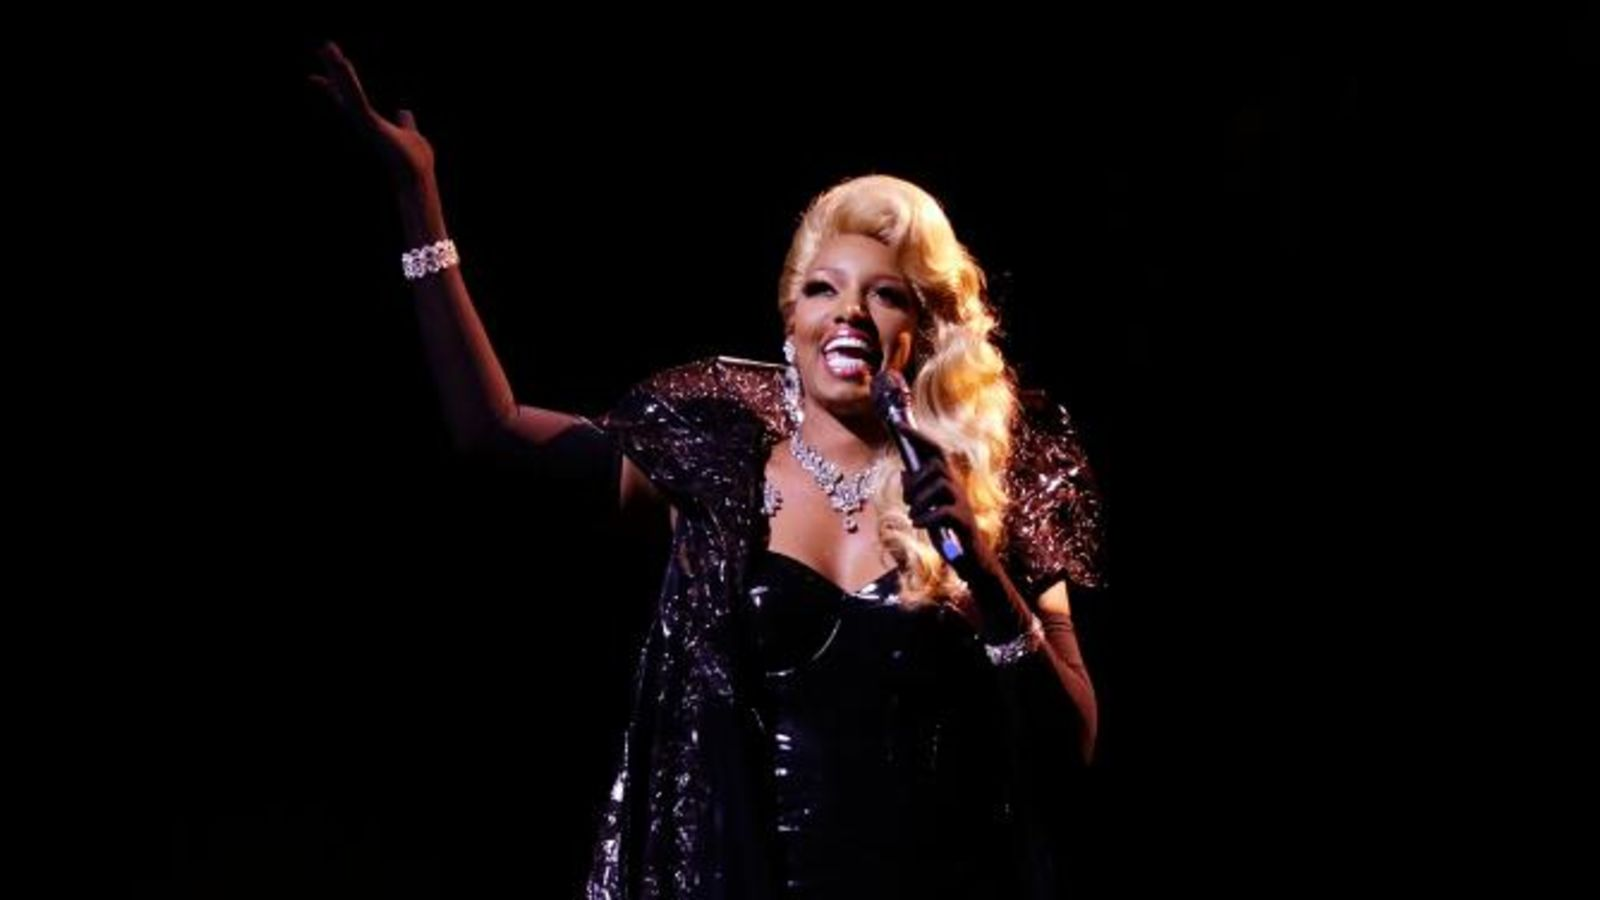 NeNe Leakes Looks Drop Dead Gorgeous On The Runway And Fans Cannot Wait To See Her In Season 12 Of RHOA